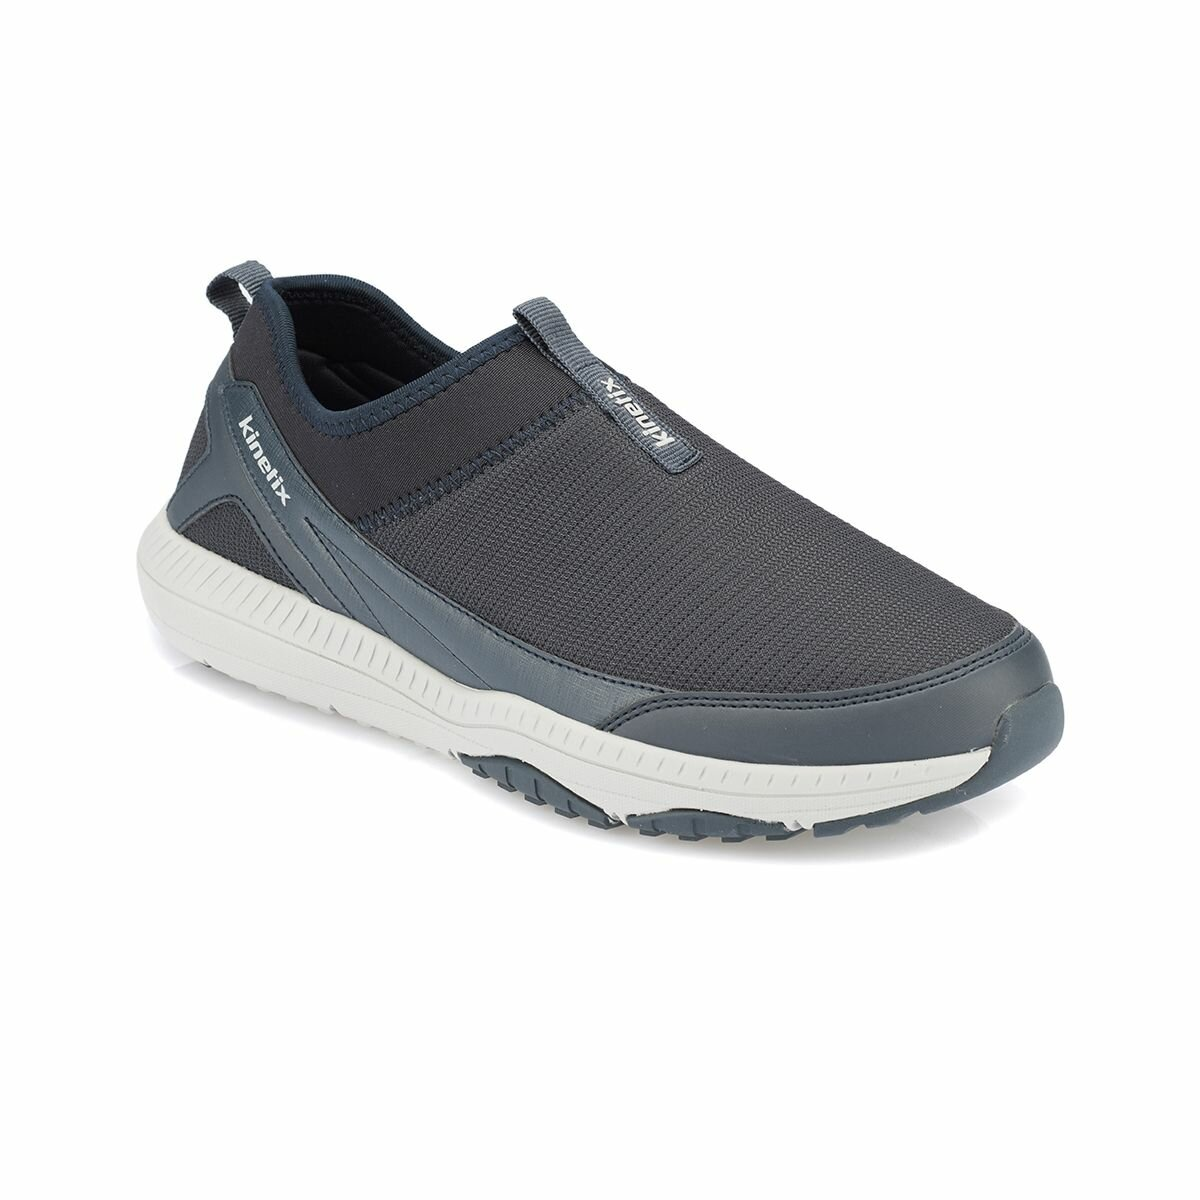 FLO TREX CITY Dark Blue Men 'S Walking Shoes KINETIX